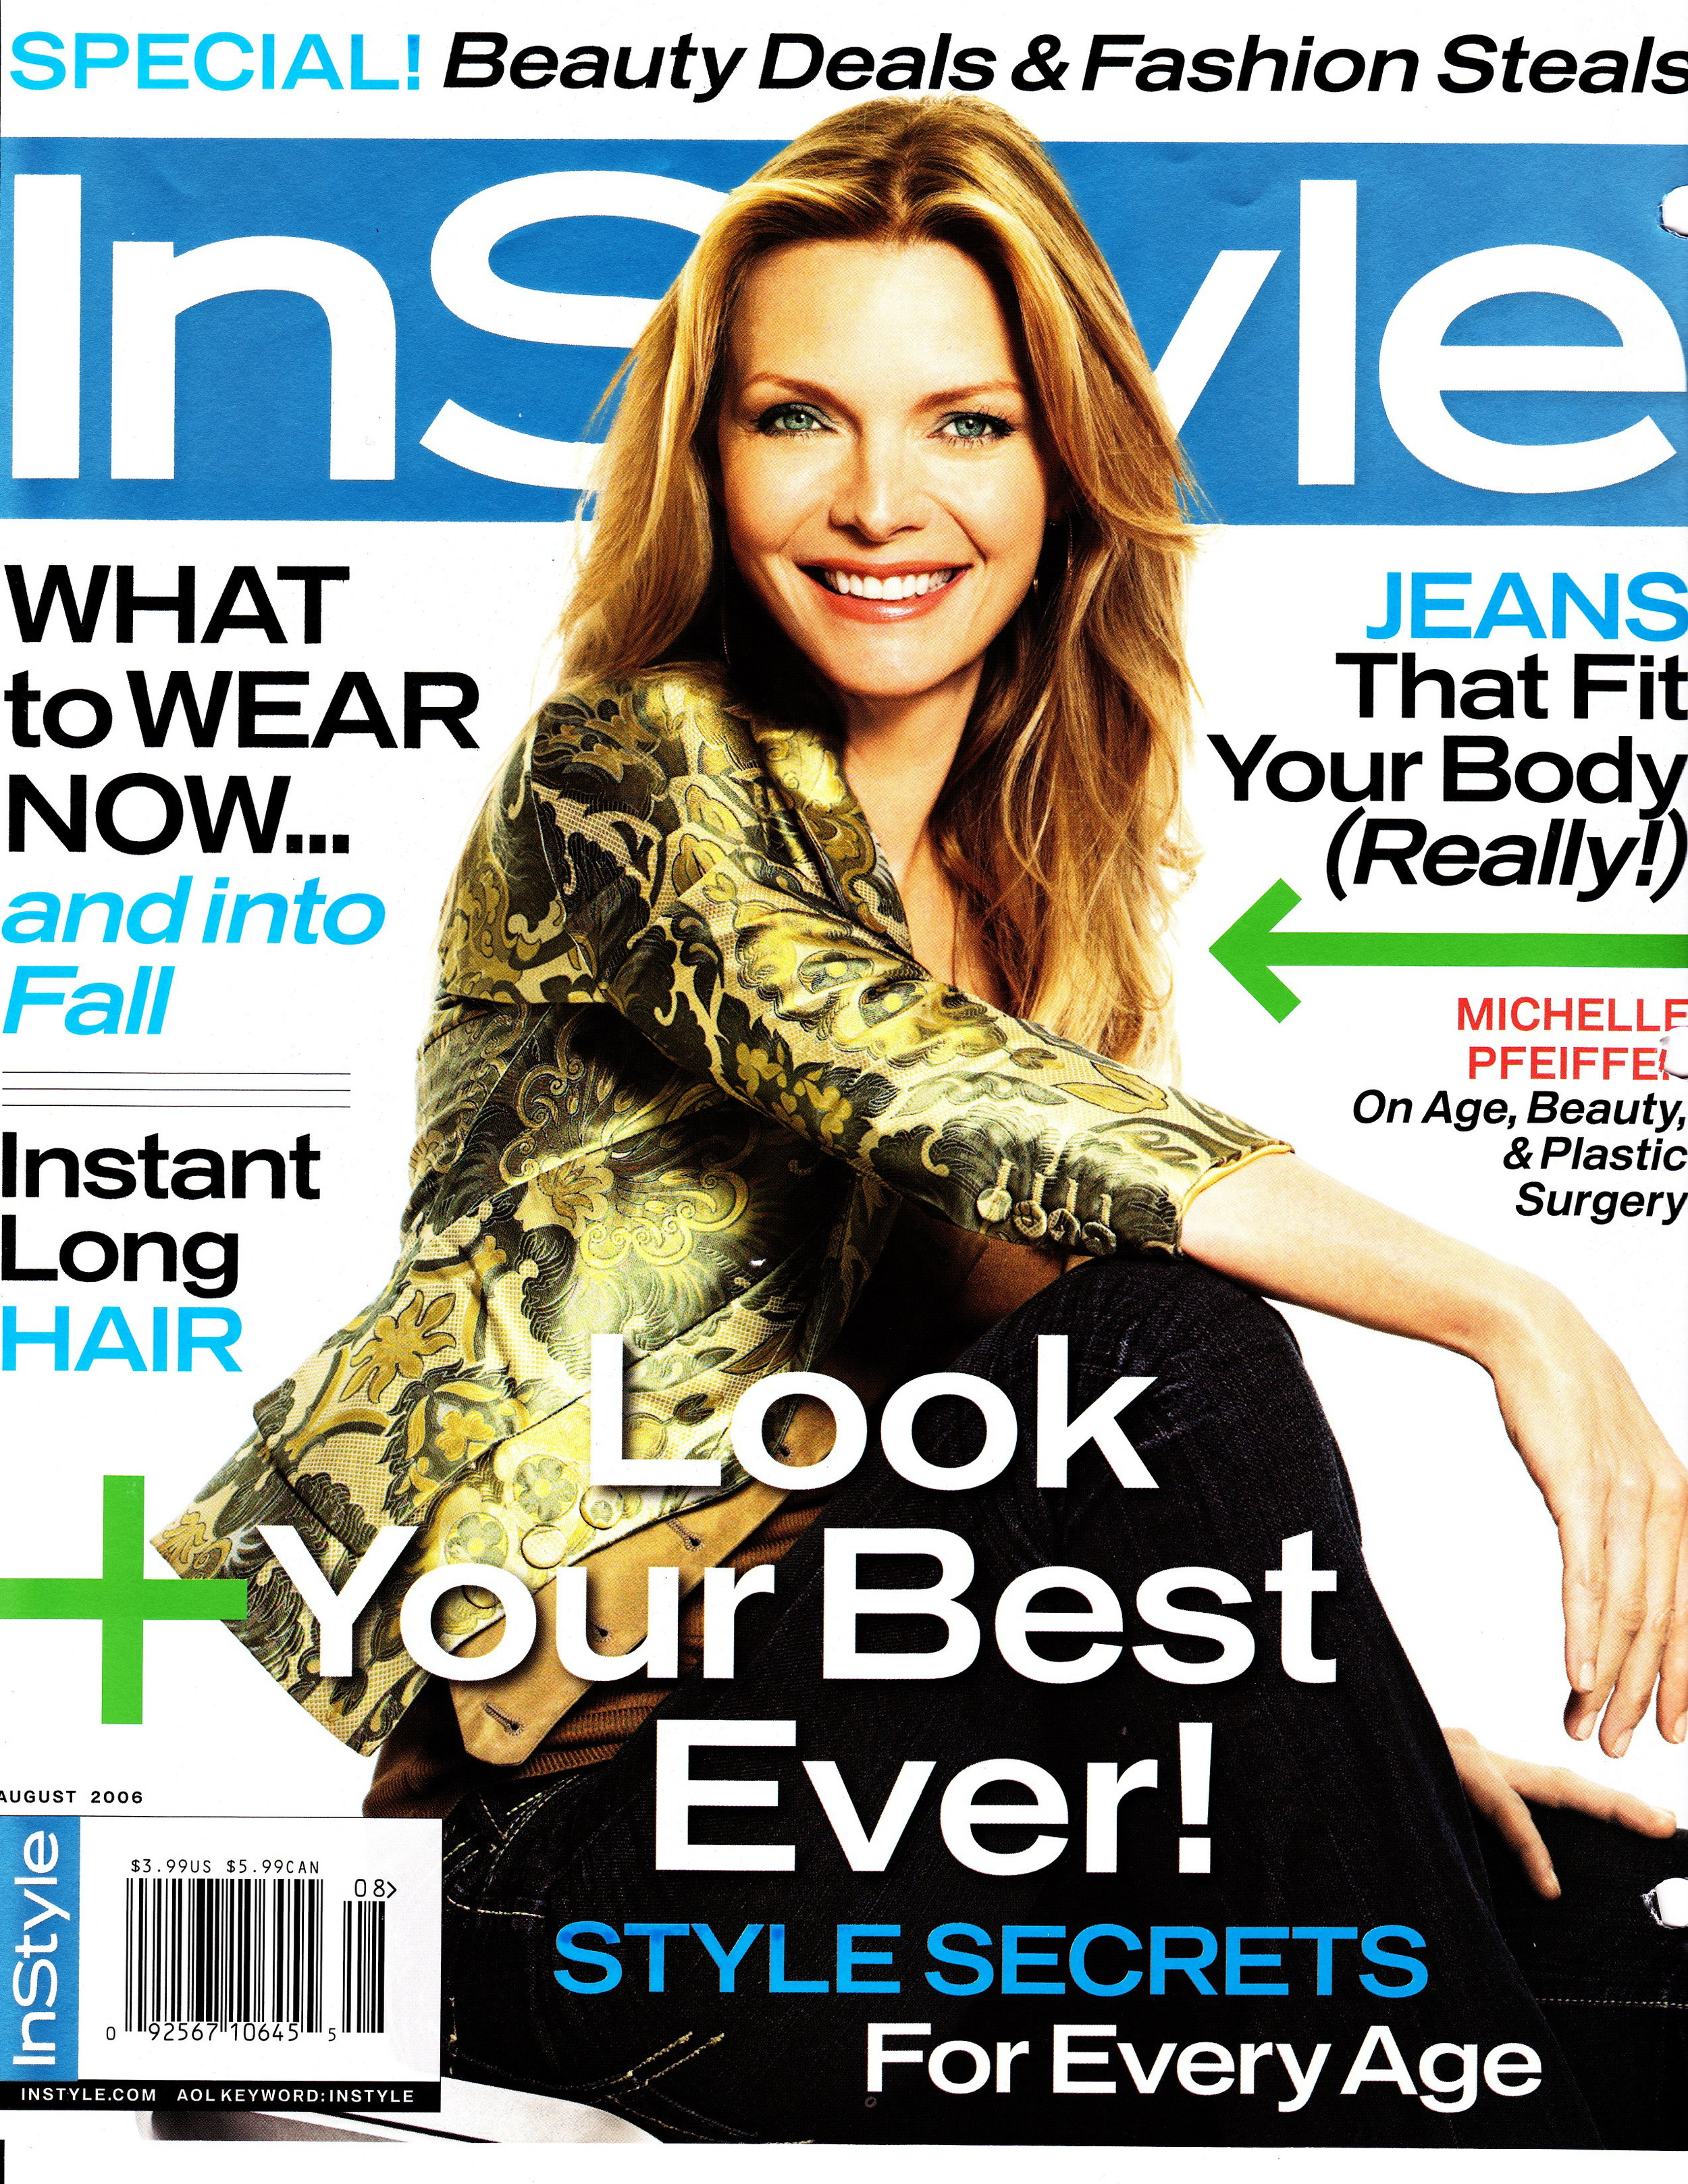 2006 August InStyle.jpg